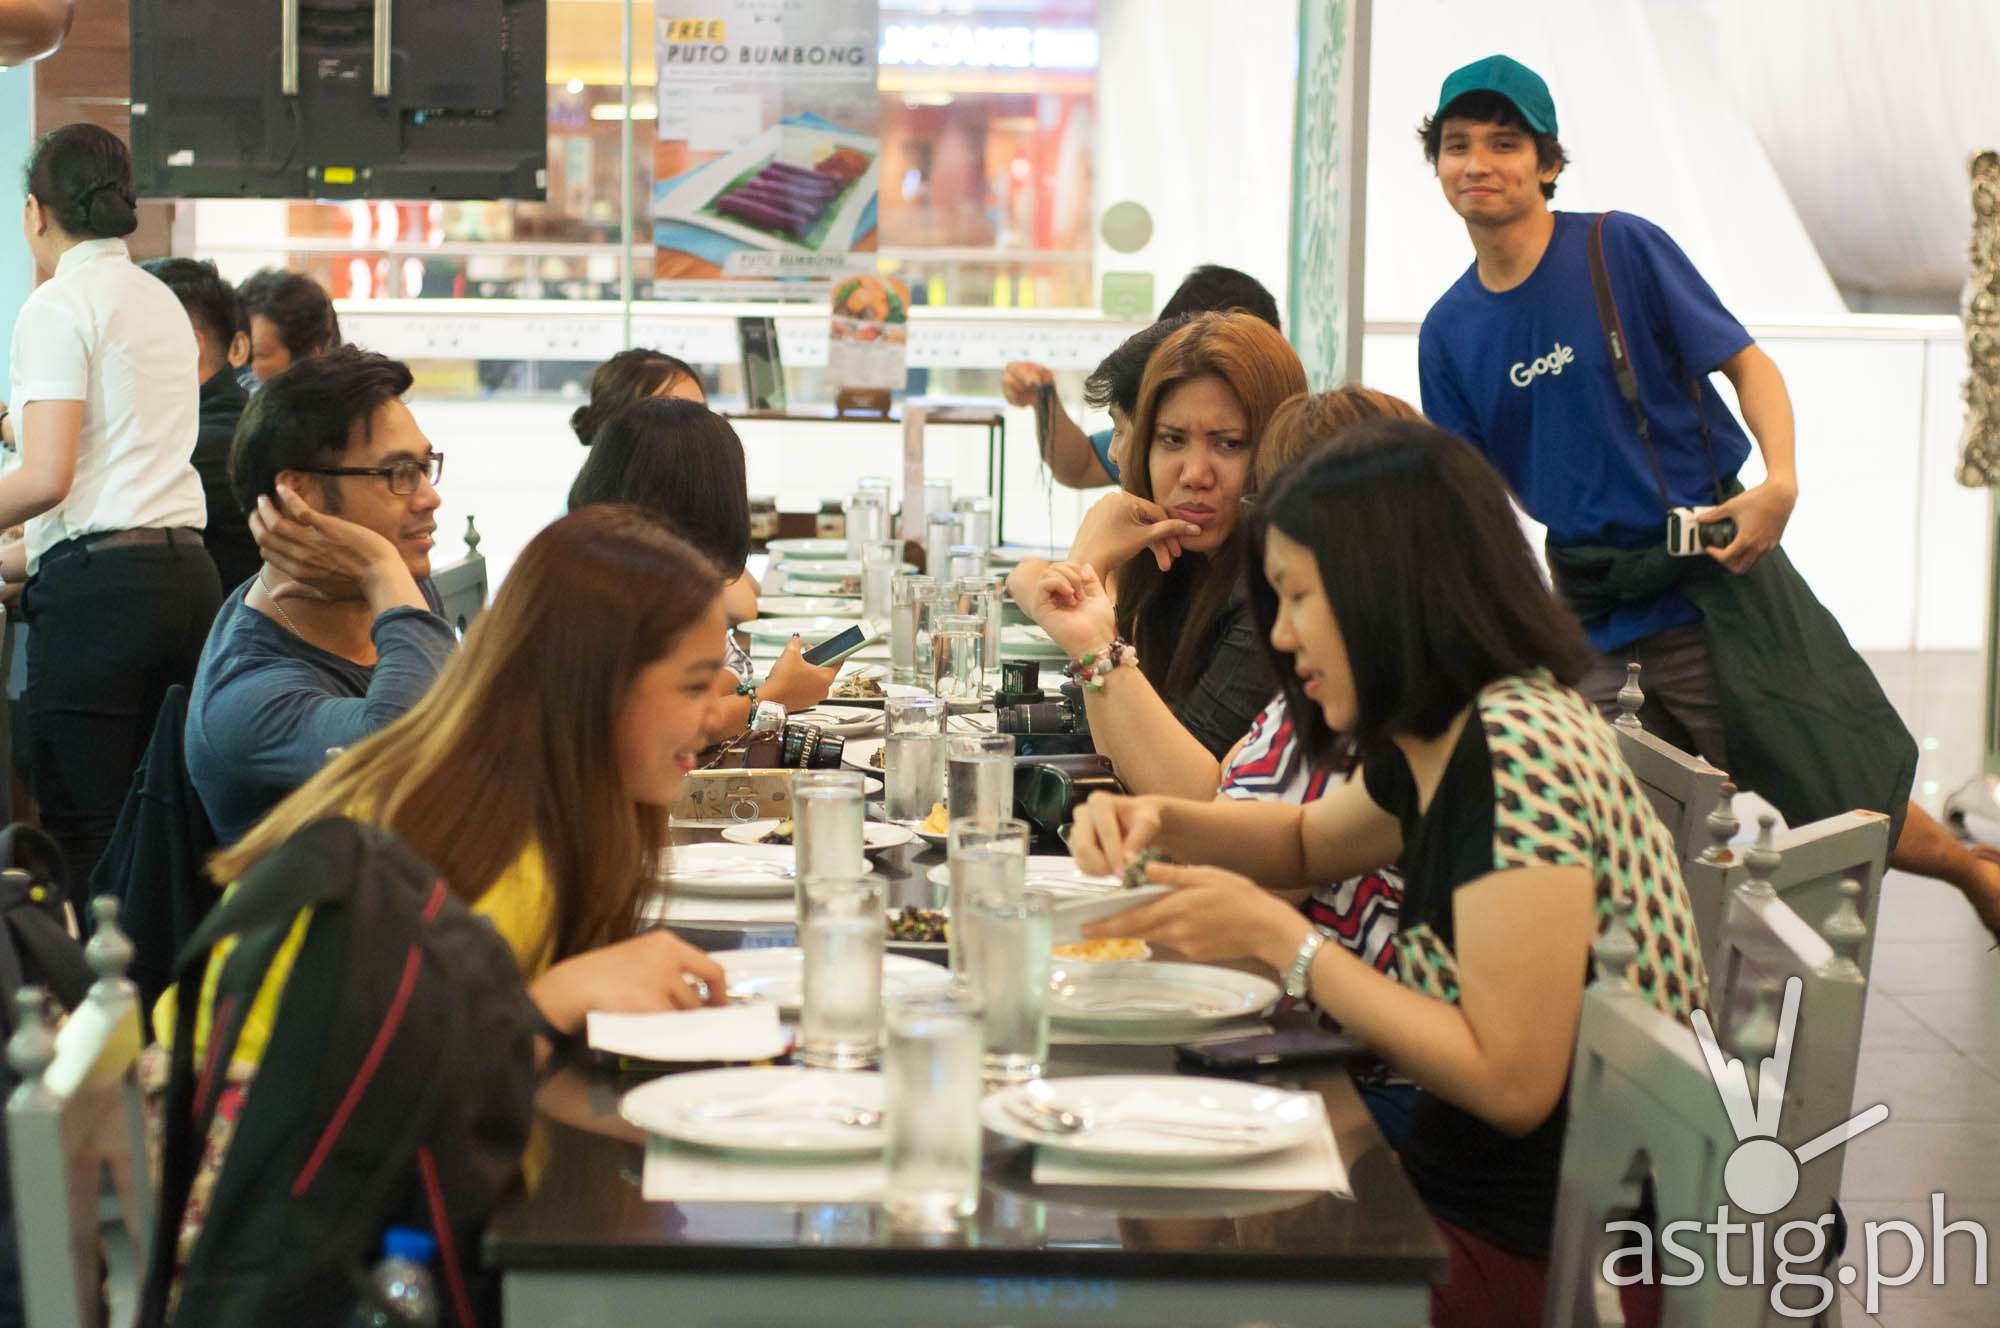 Bloggers featuring Rodel Flordeliz, Ruth Dela Cruz, Stacy Lion, and Duane Bacon - Mangan Restaurant Glorietta 2